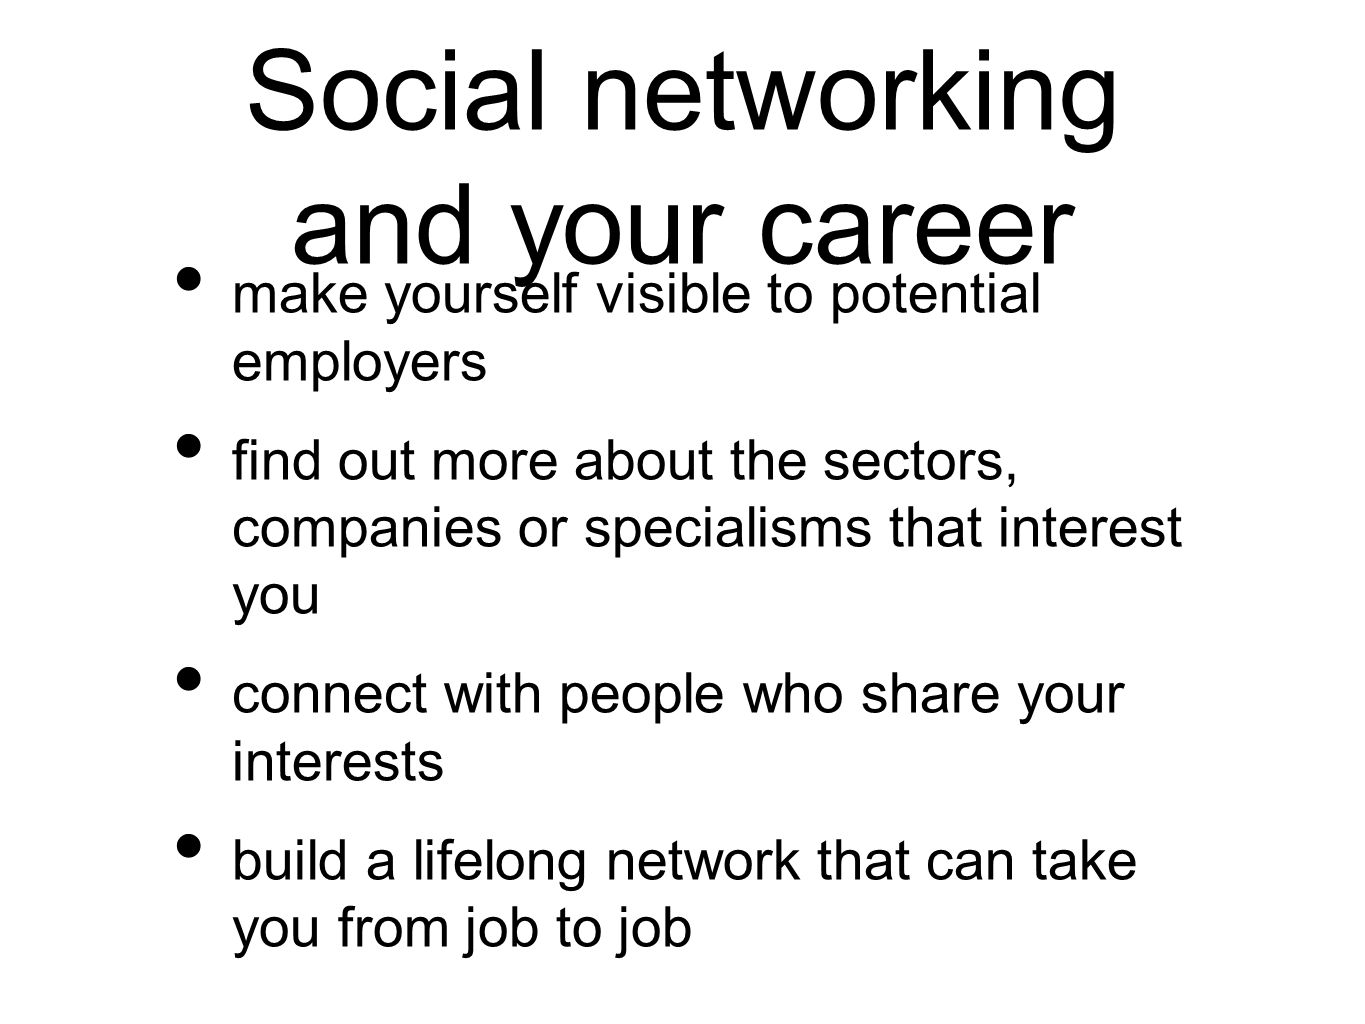 Social networking and your career make yourself visible to potential employers find out more about the sectors, companies or specialisms that interest